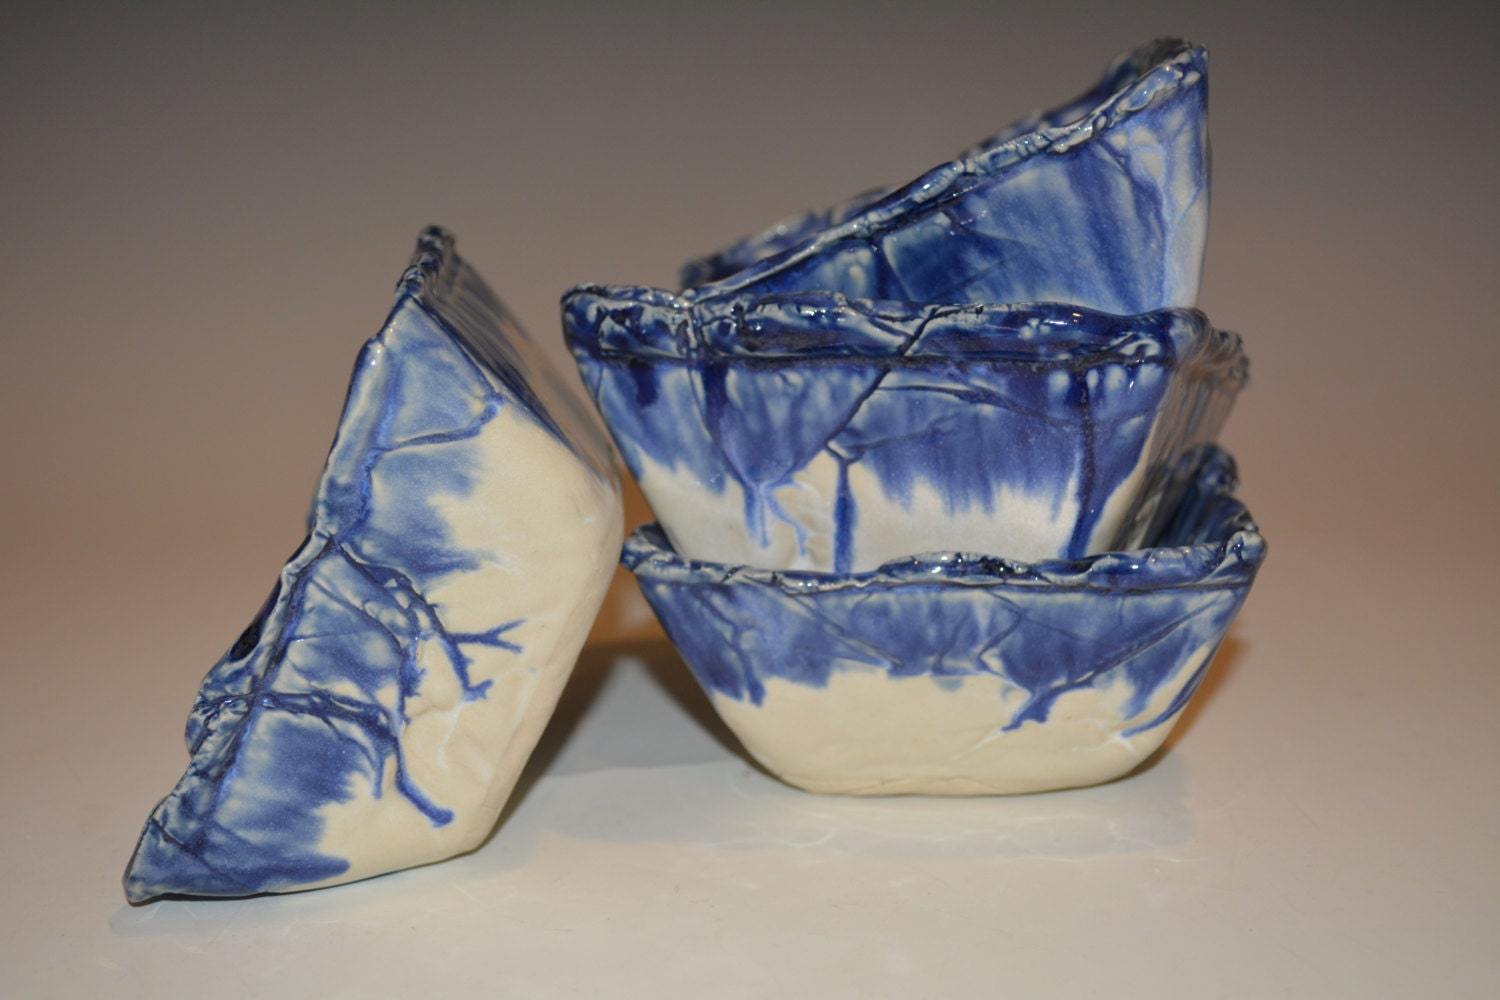 Ceramic Bowls Square Pottery Bowls Gift Set Of 4 Pottery